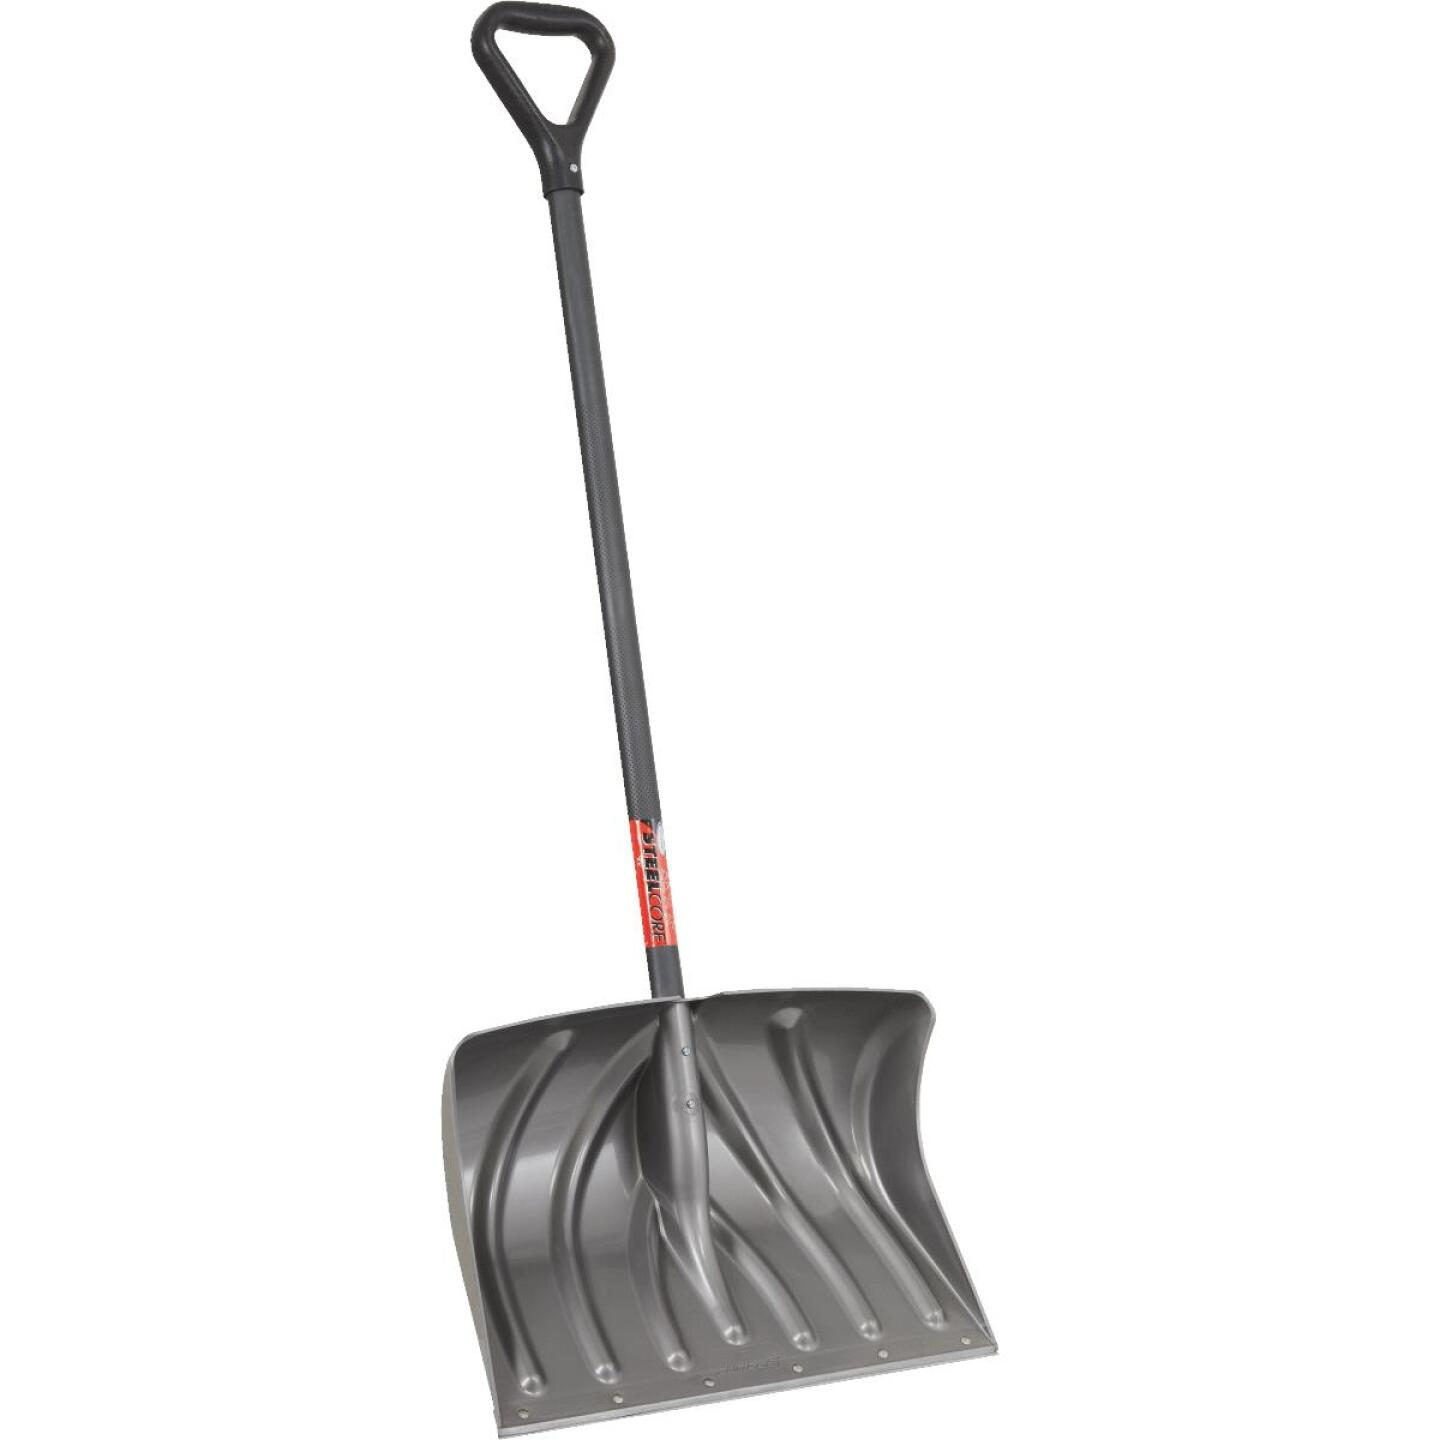 Suncast 20 In. Graphite Snow Shovel & Pusher with 38 In. Steel Handle Image 3